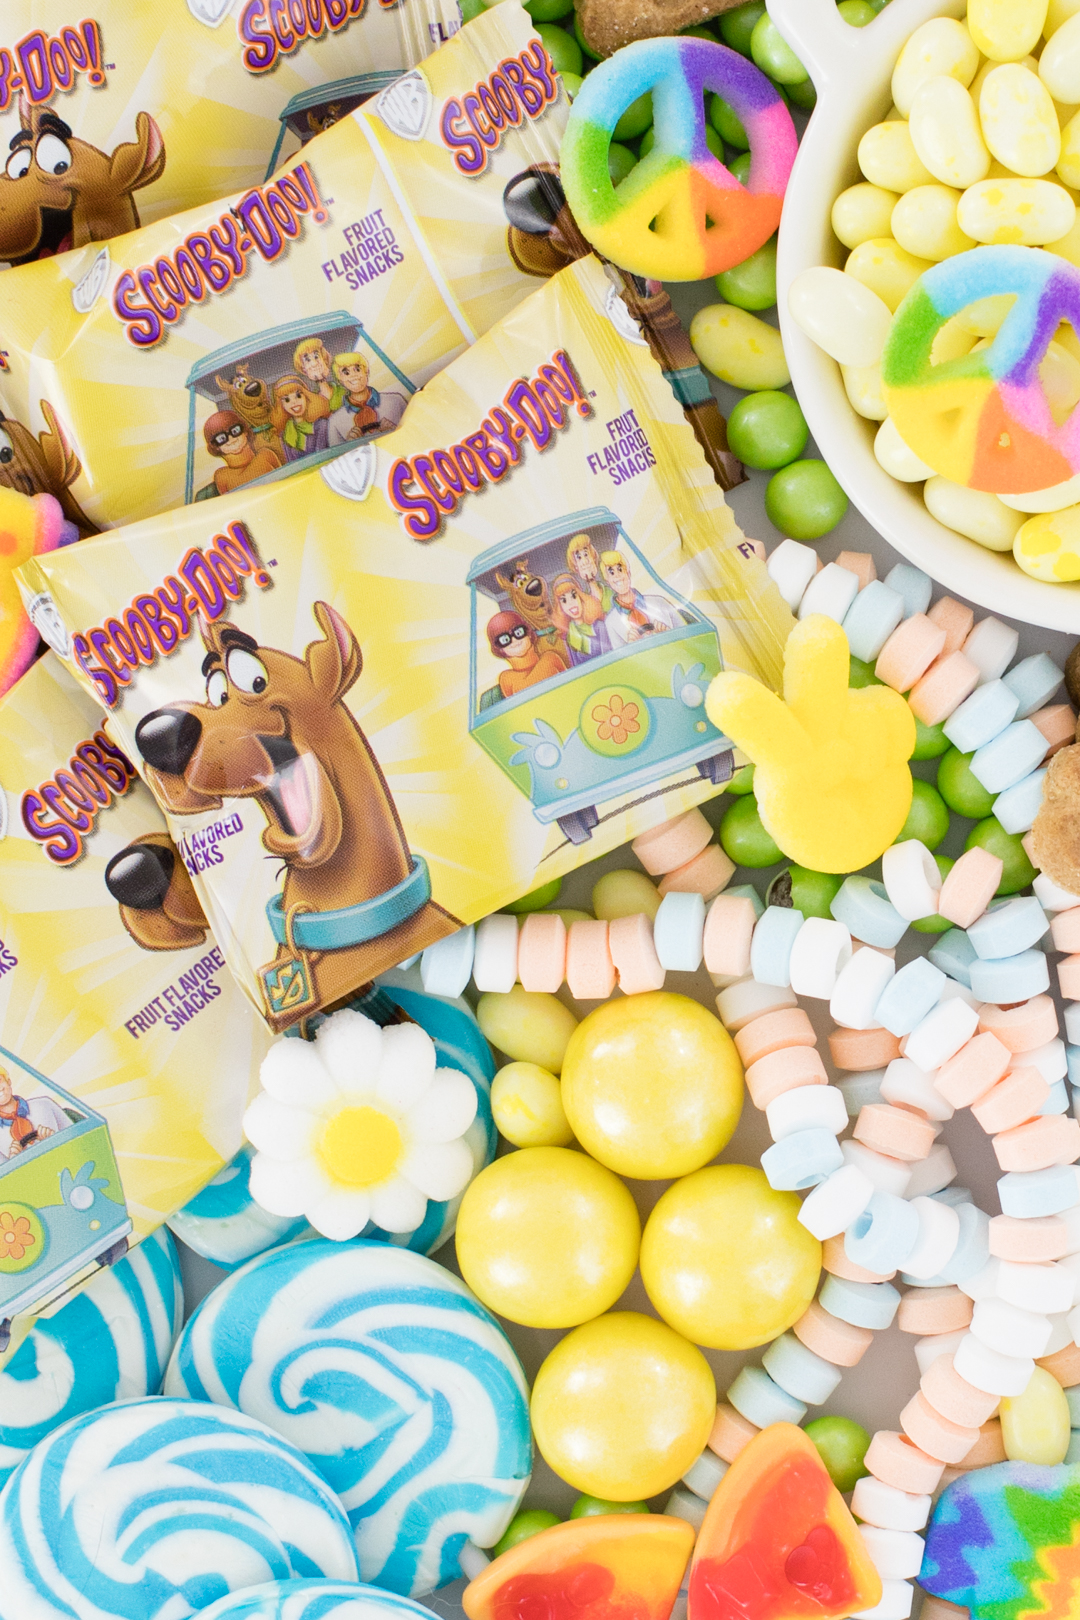 Scooby Fruit Snacks Packages and peace sign candy